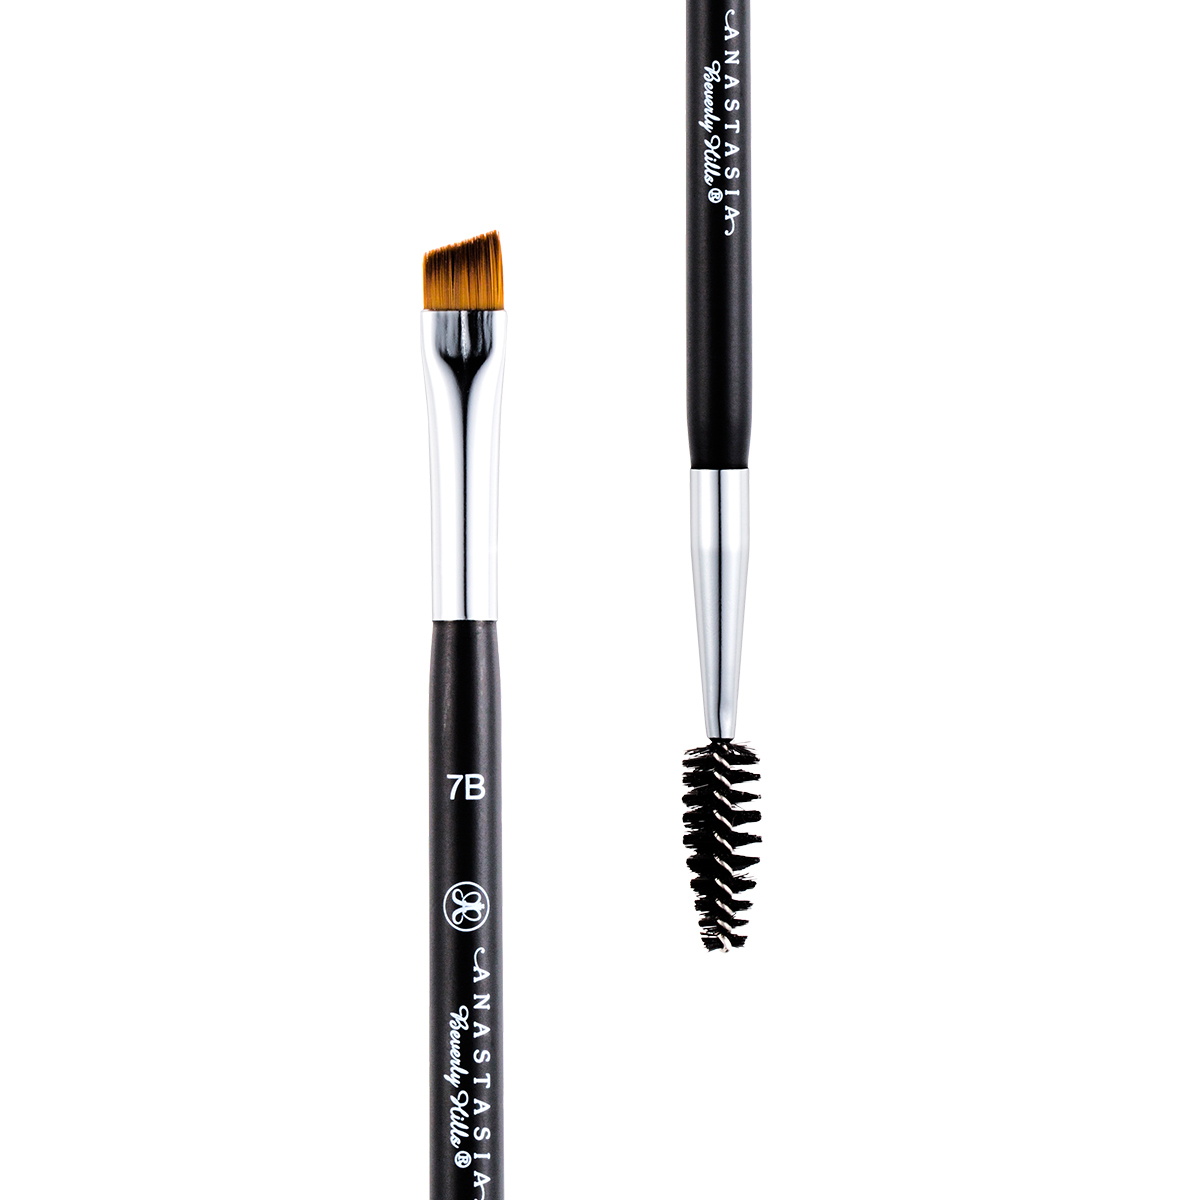 Brush 7B – Dual-Ended Angled Brush